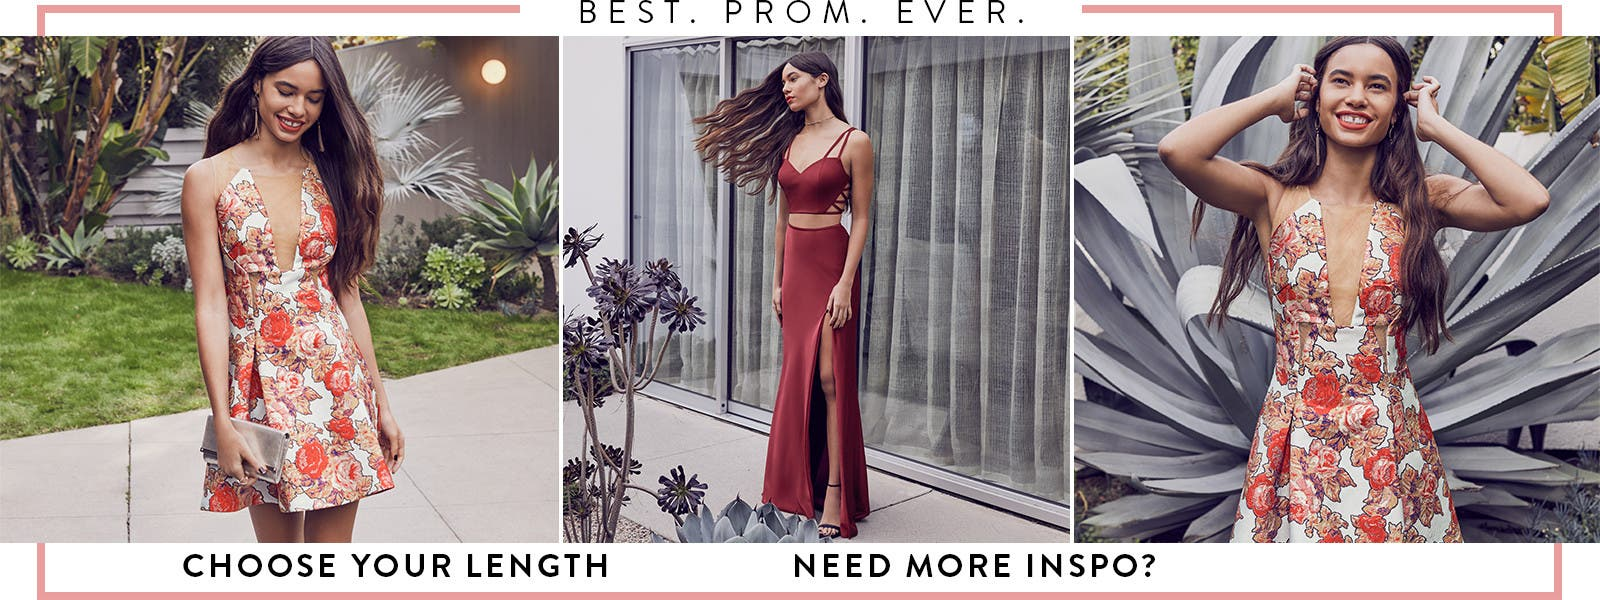 Best prom ever: long and short dresses, prom shoes, accessories and more.